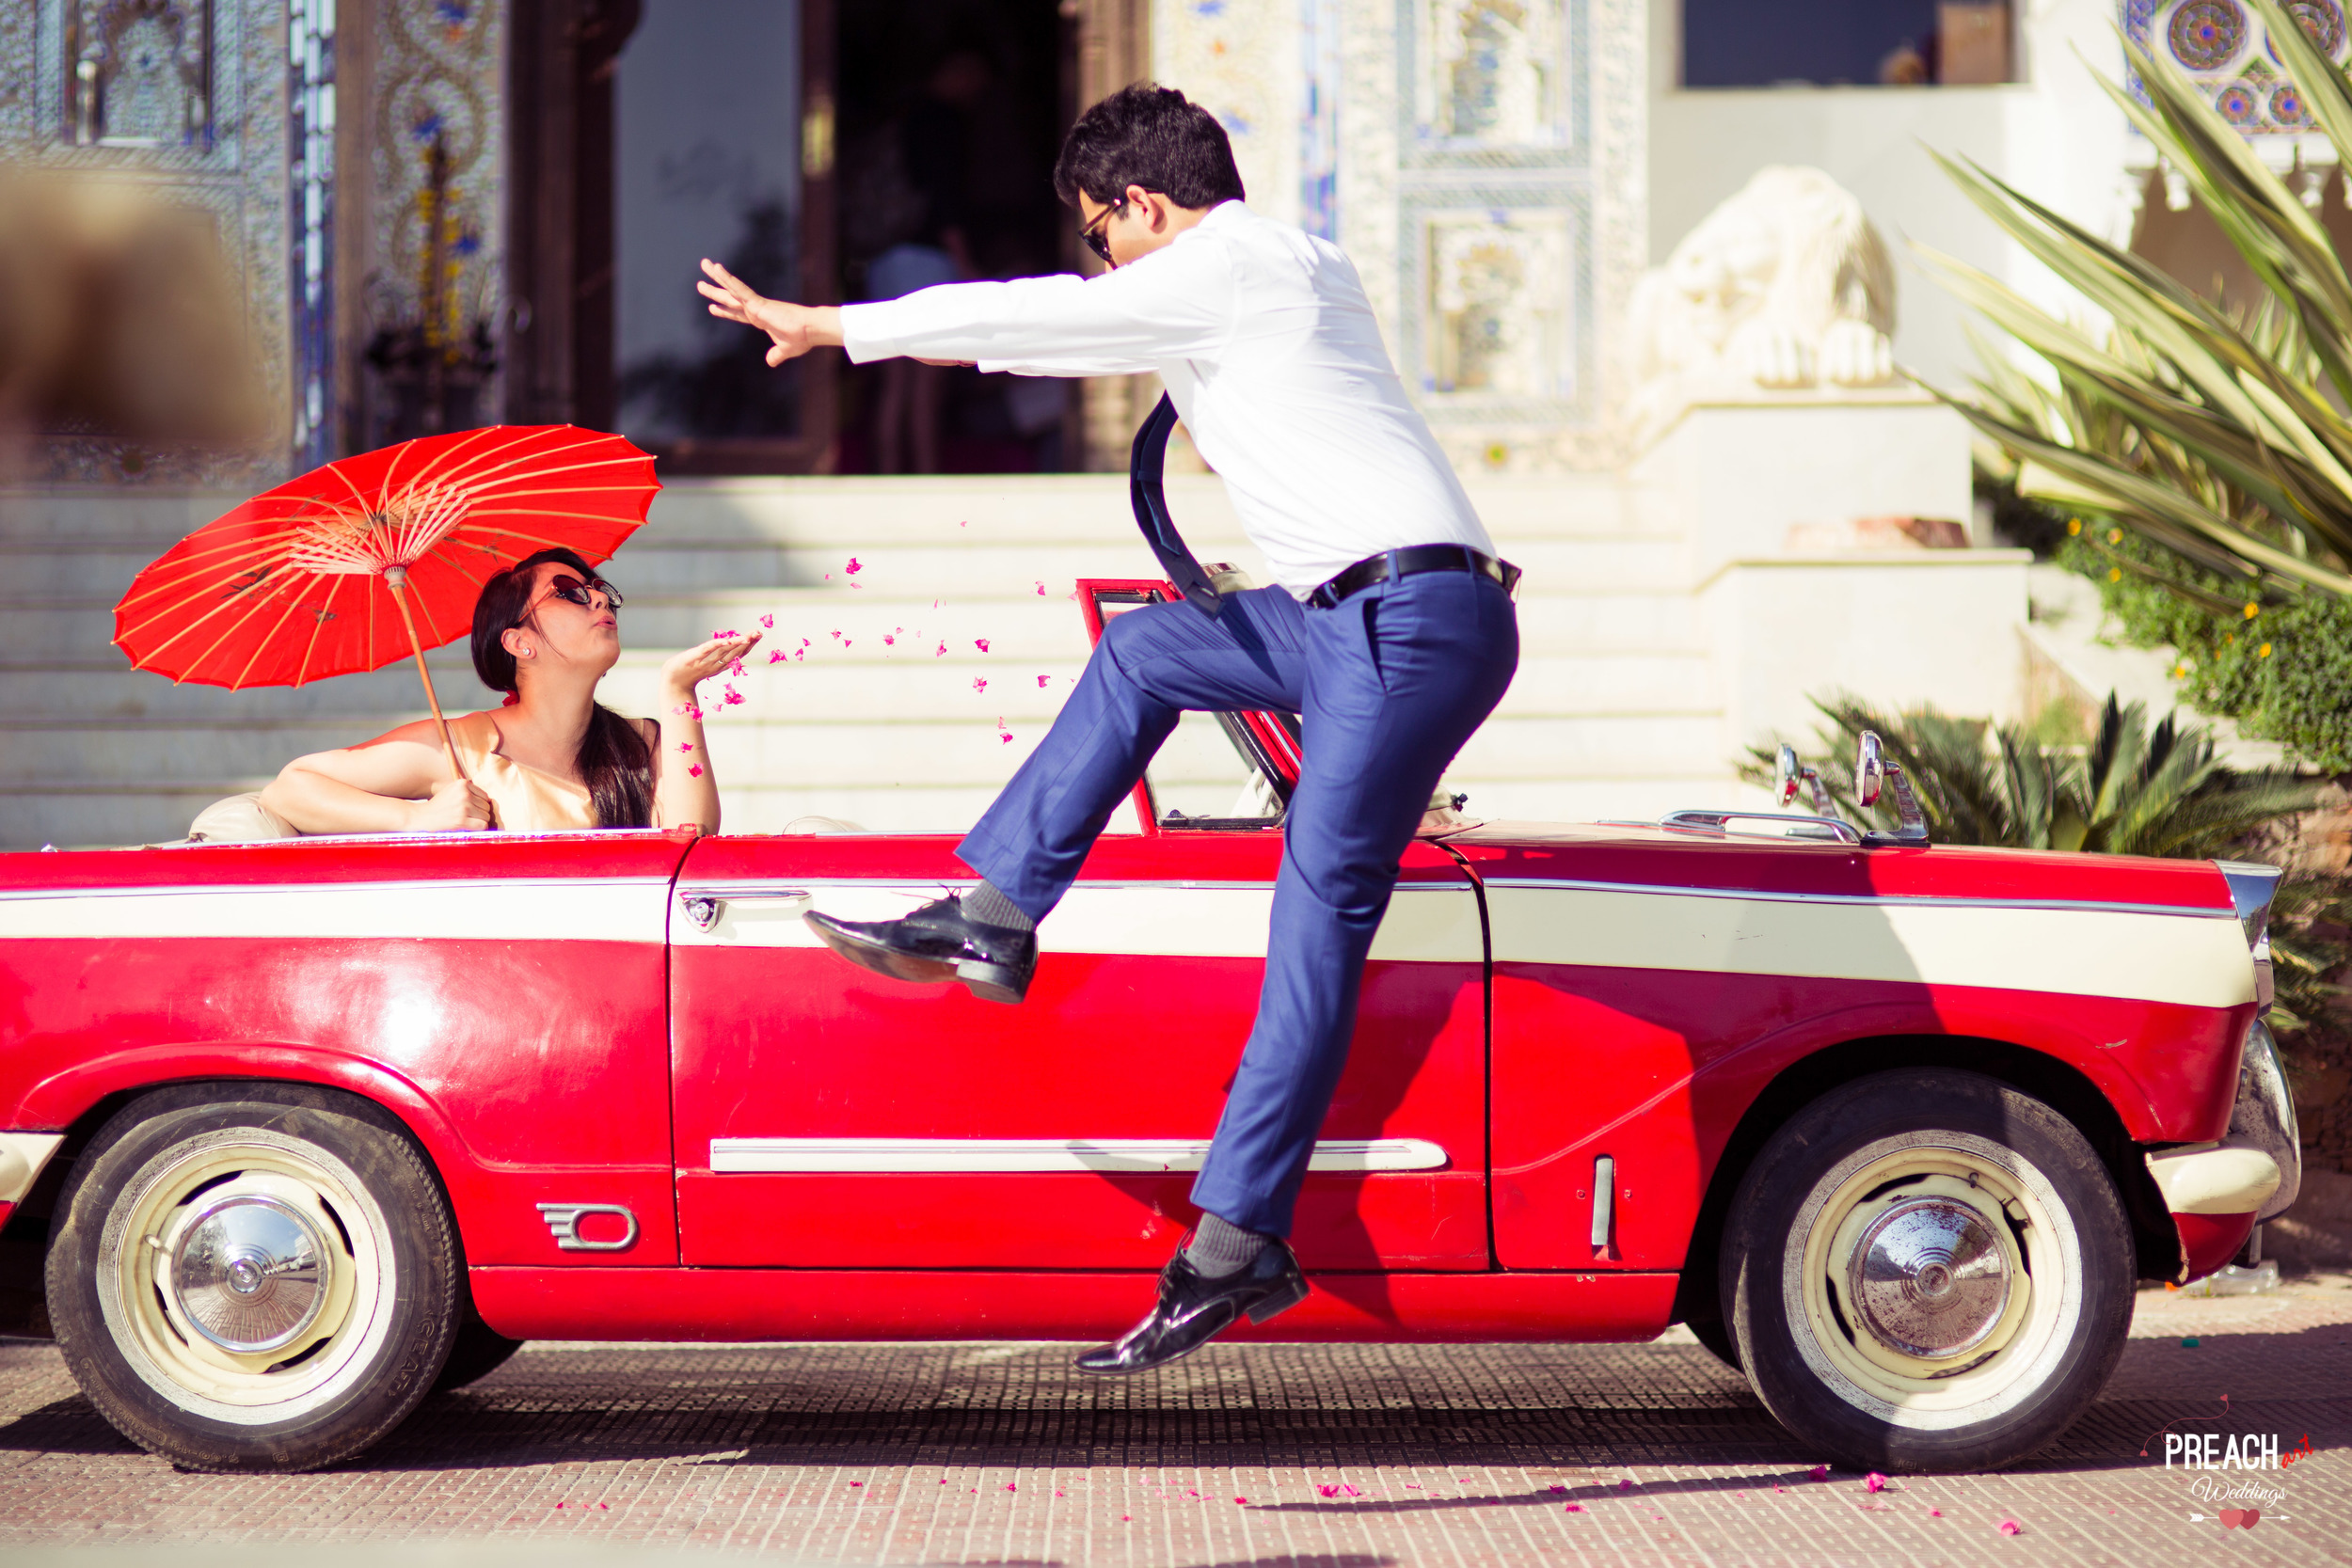 A&B_Udaipur Pre-wedding Shoot_PREACH ART-53.jpg